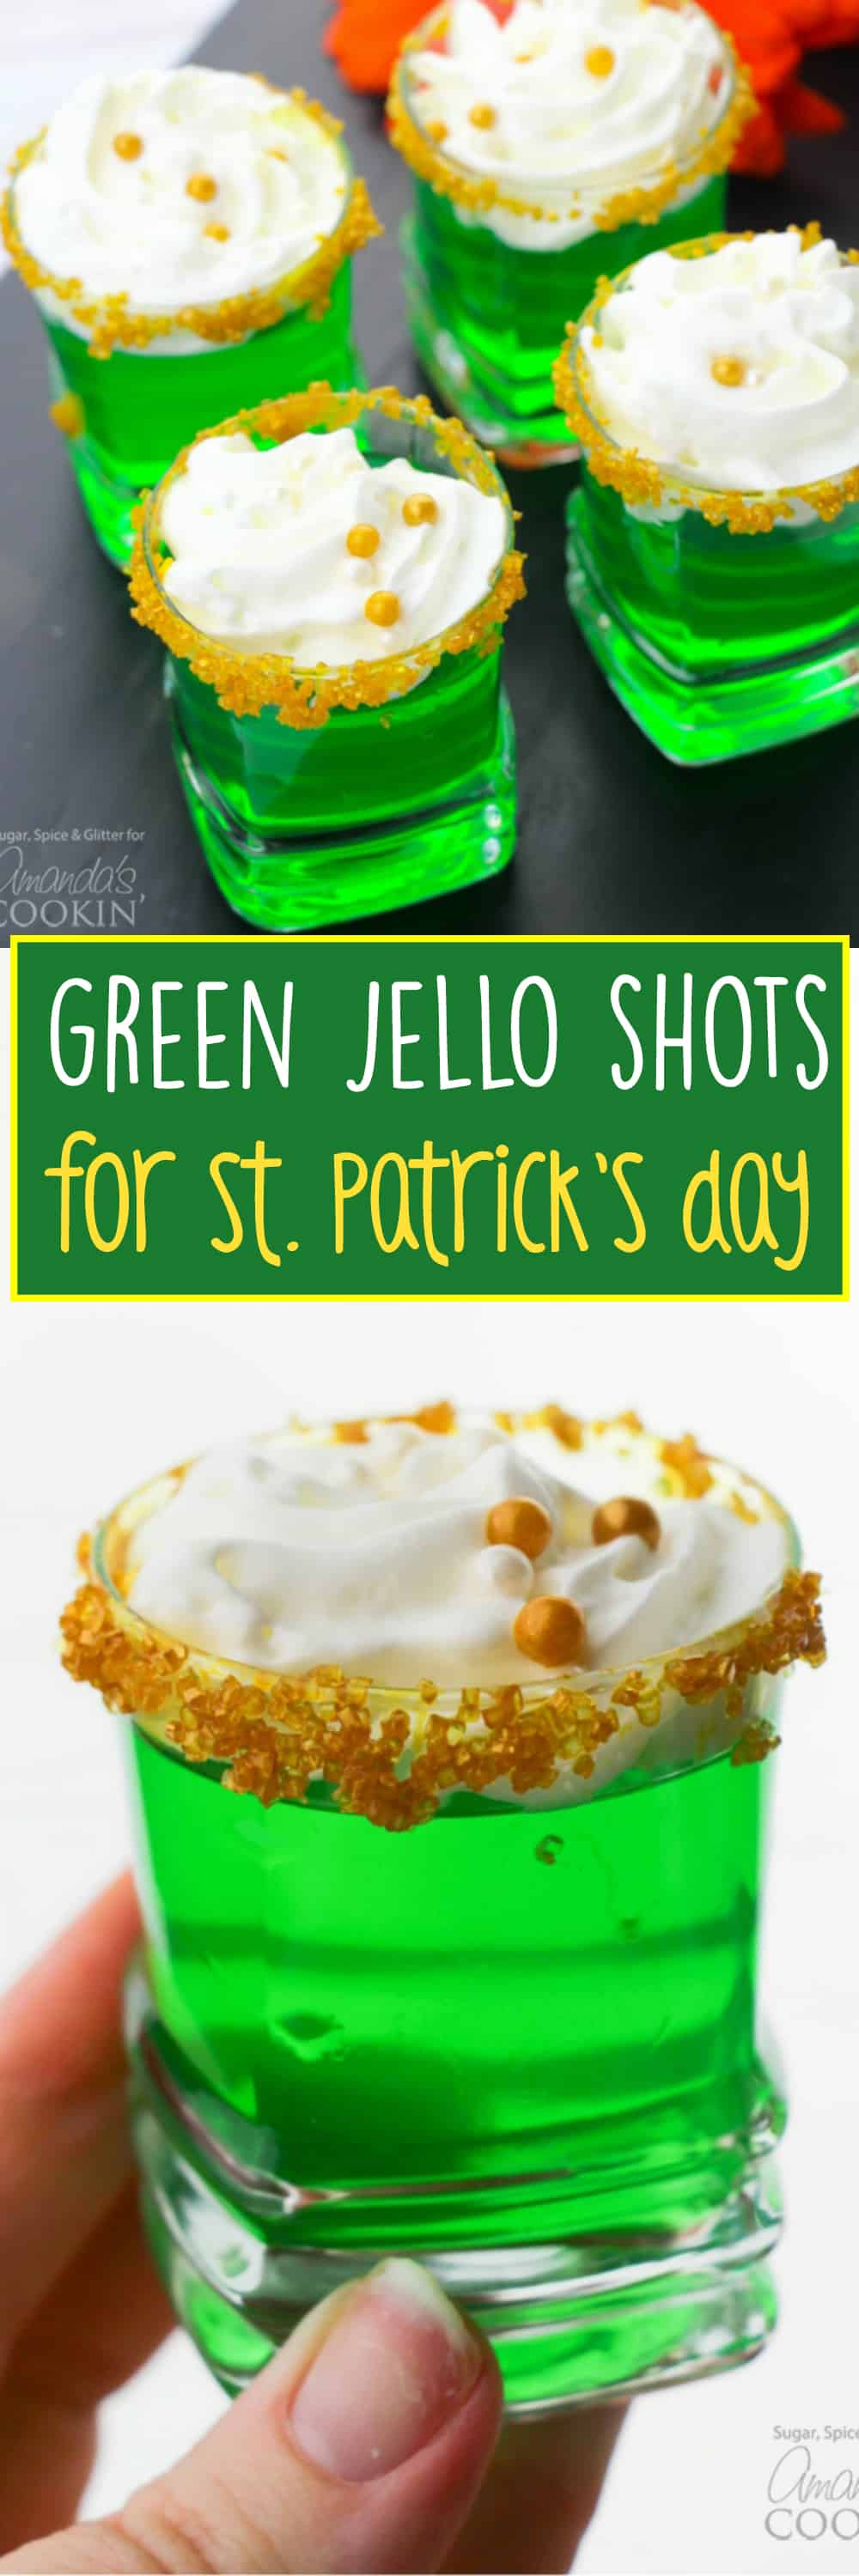 Green Jello Shots: a festive dessert and prep-ahead cocktail!